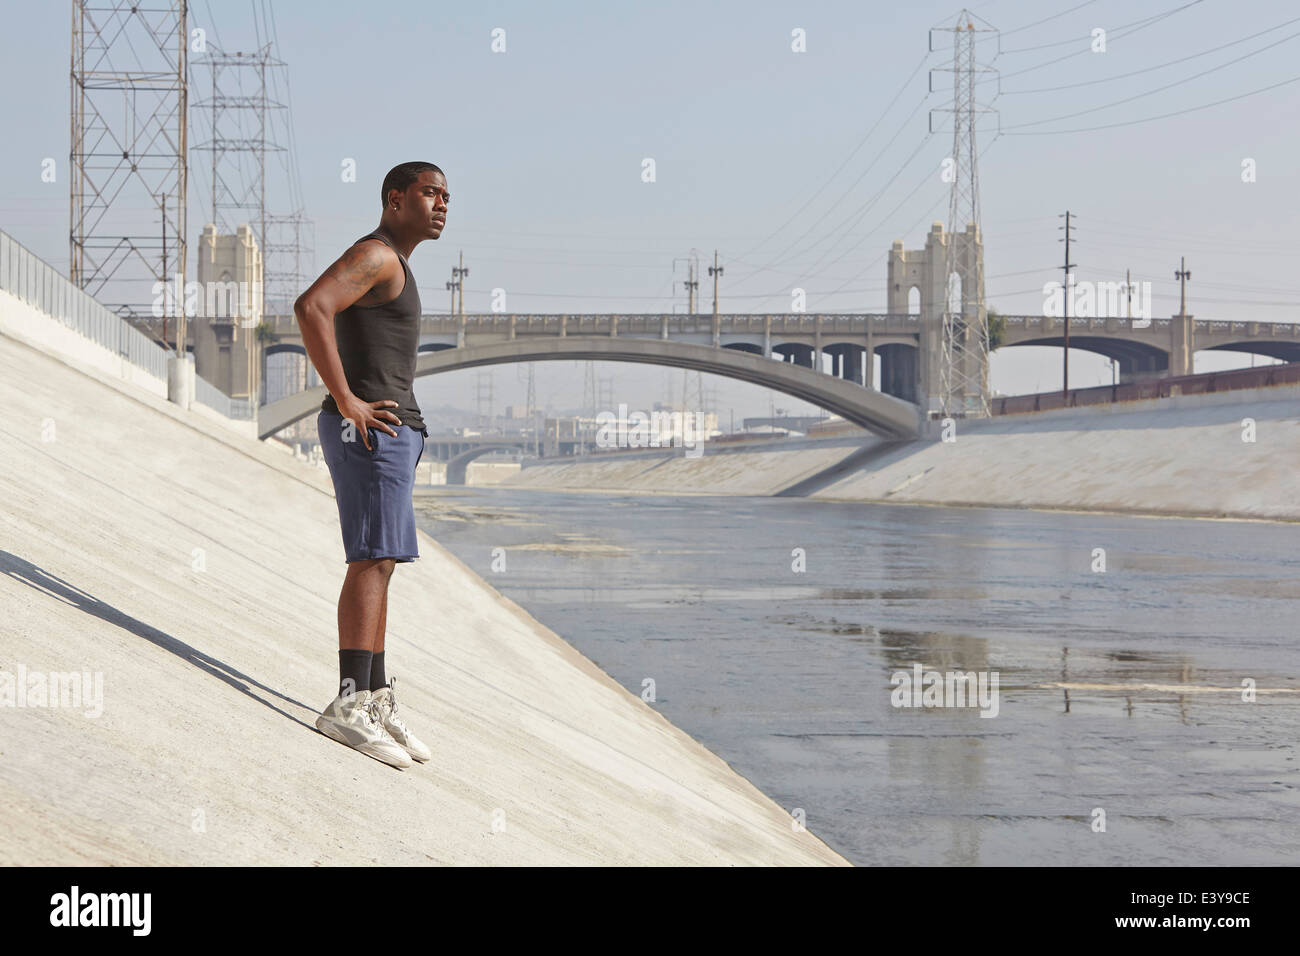 Young male runner taking a break on city riverbank - Stock Image